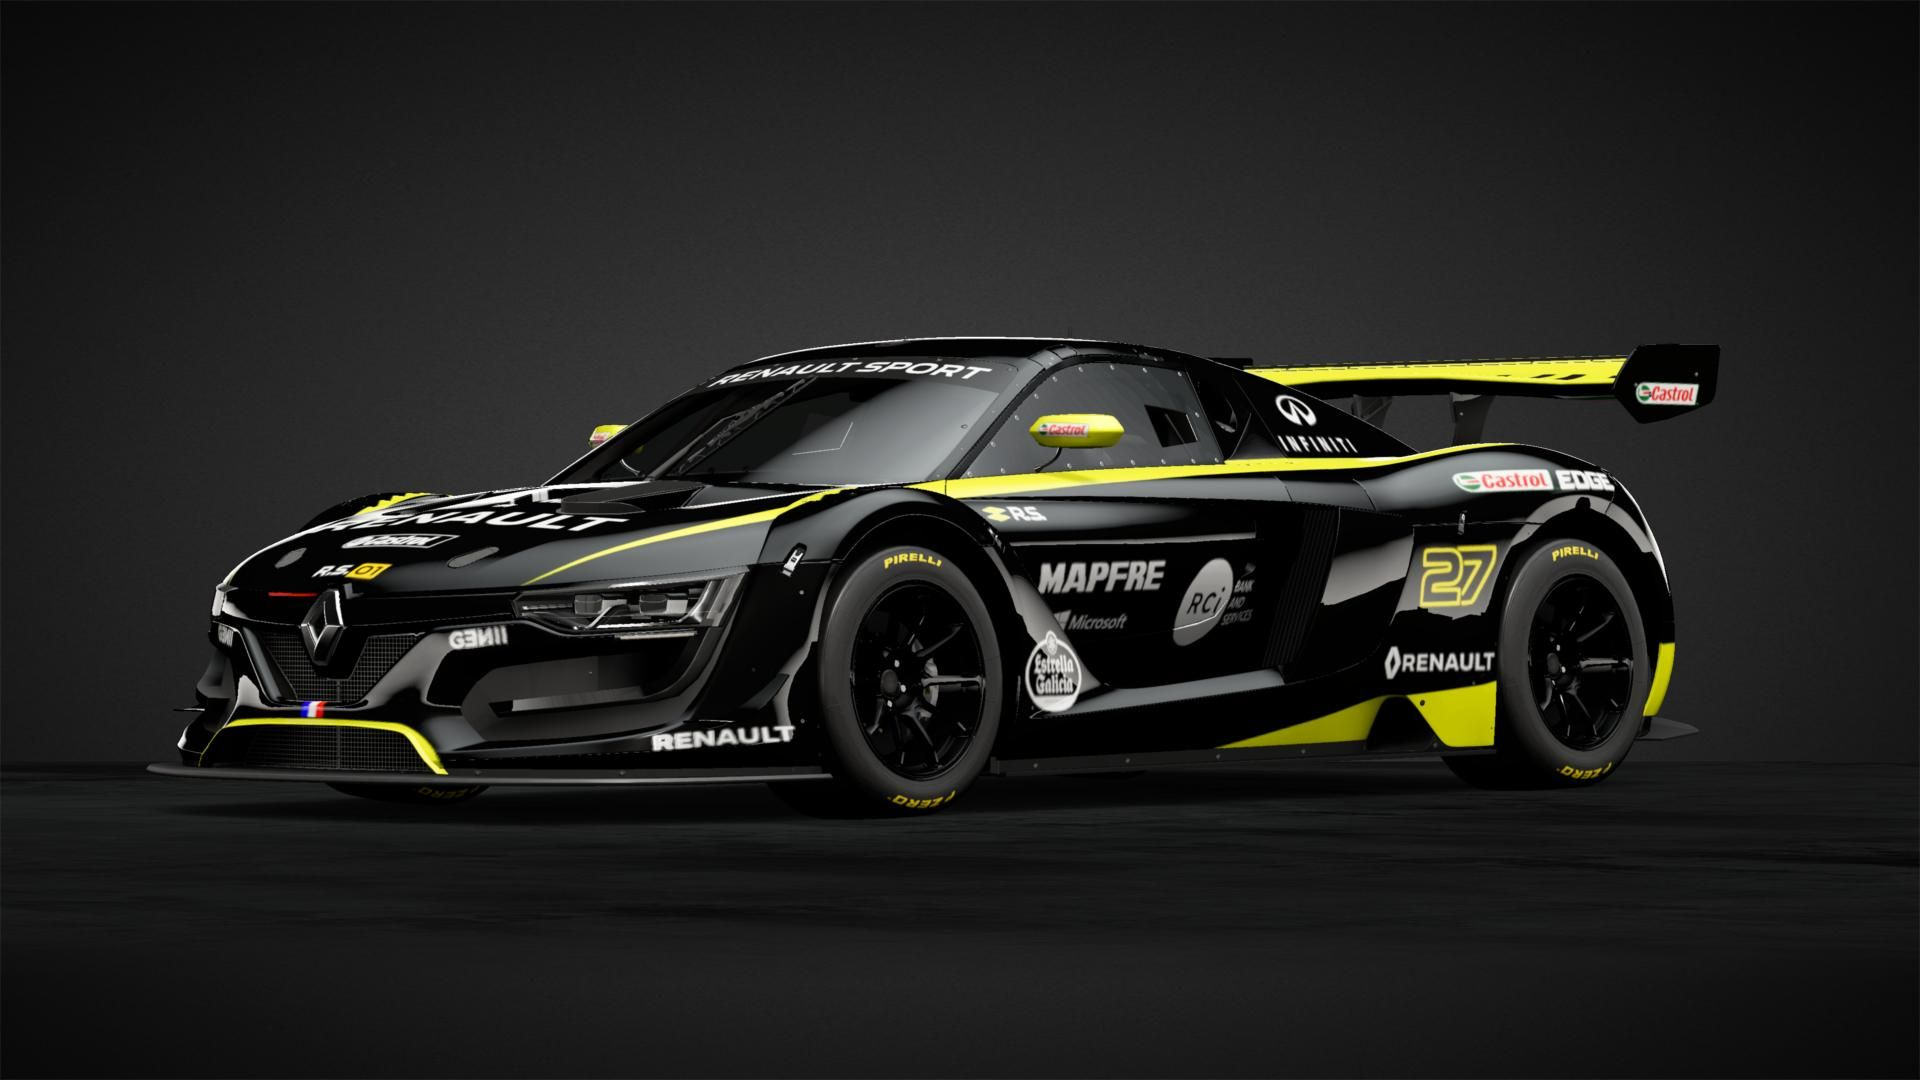 Renault RS 01 Renault F1 Team Car Livery by oOMadMax